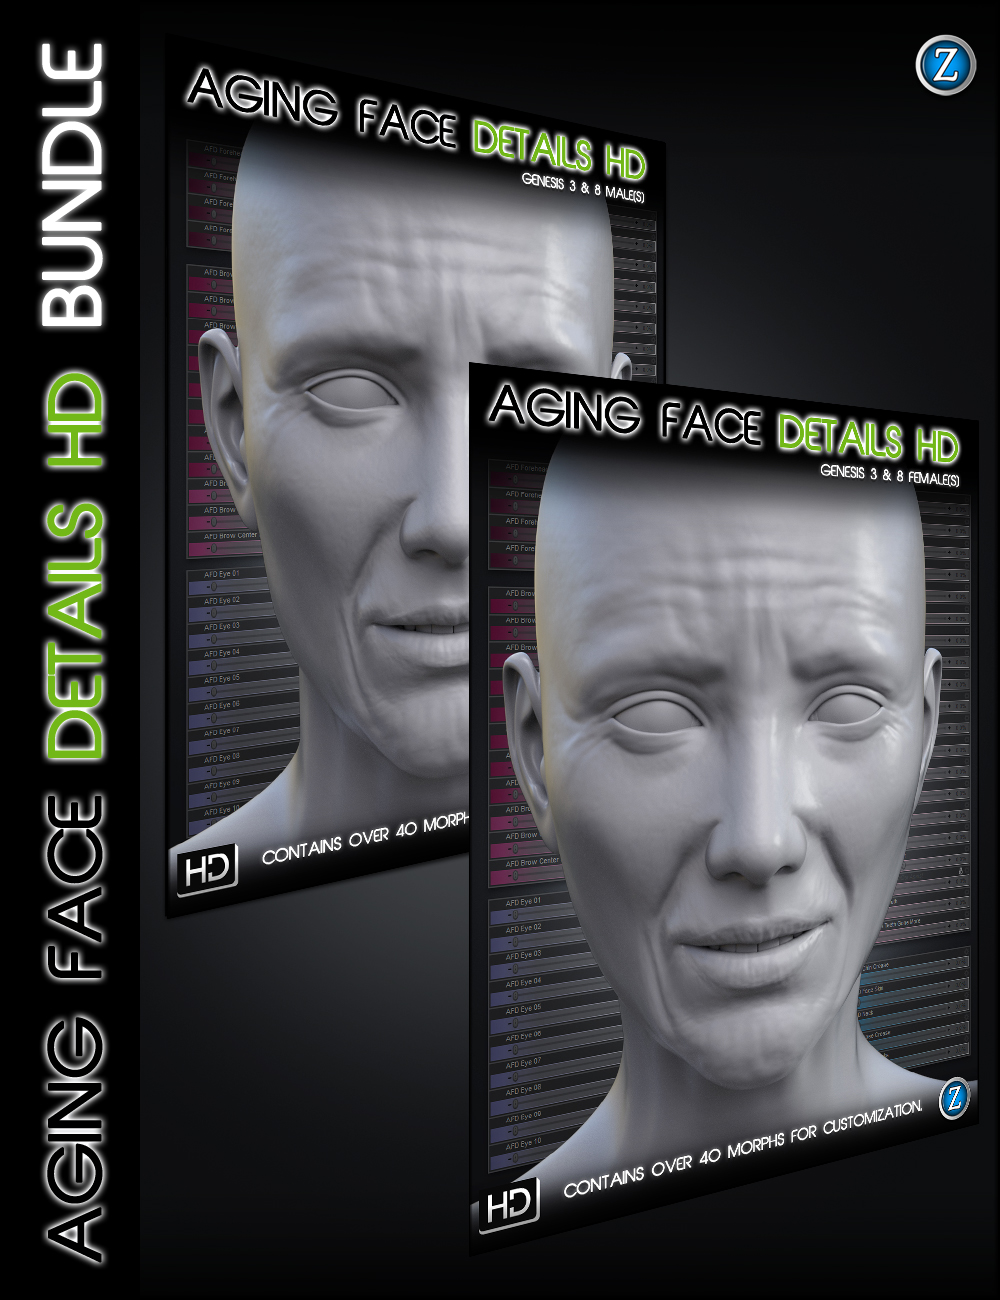 Aging Face Details HD for Genesis 3 and 8 Bundle by: Zev0, 3D Models by Daz 3D